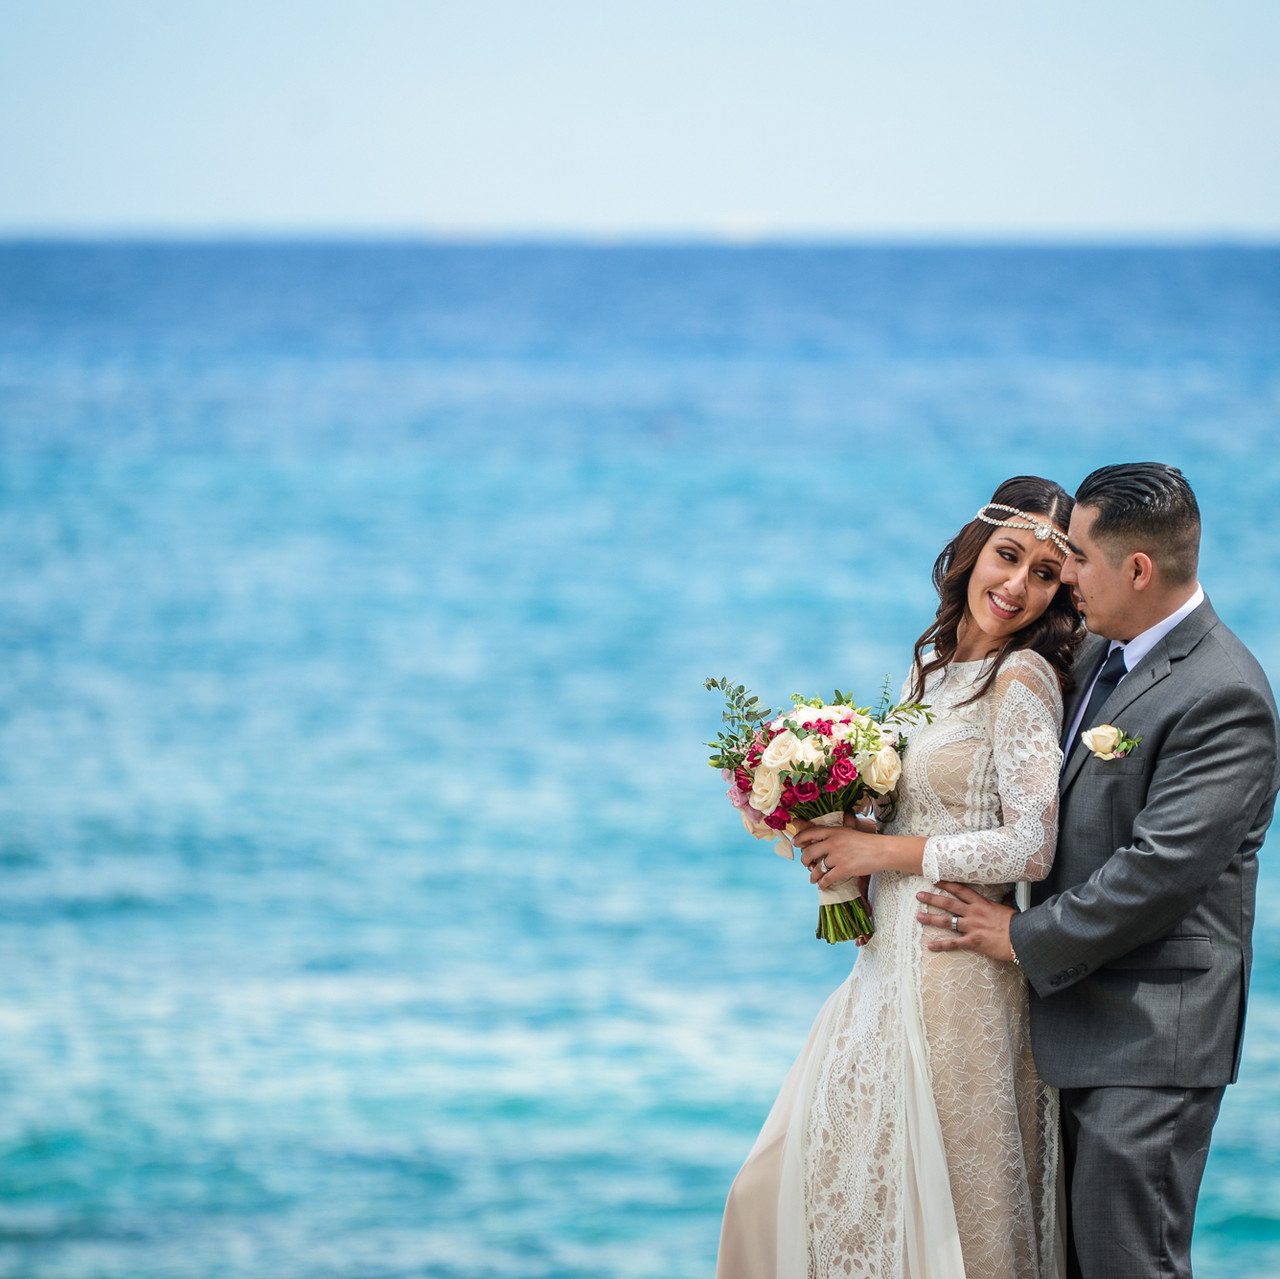 The Ocean Photo Weddings-30